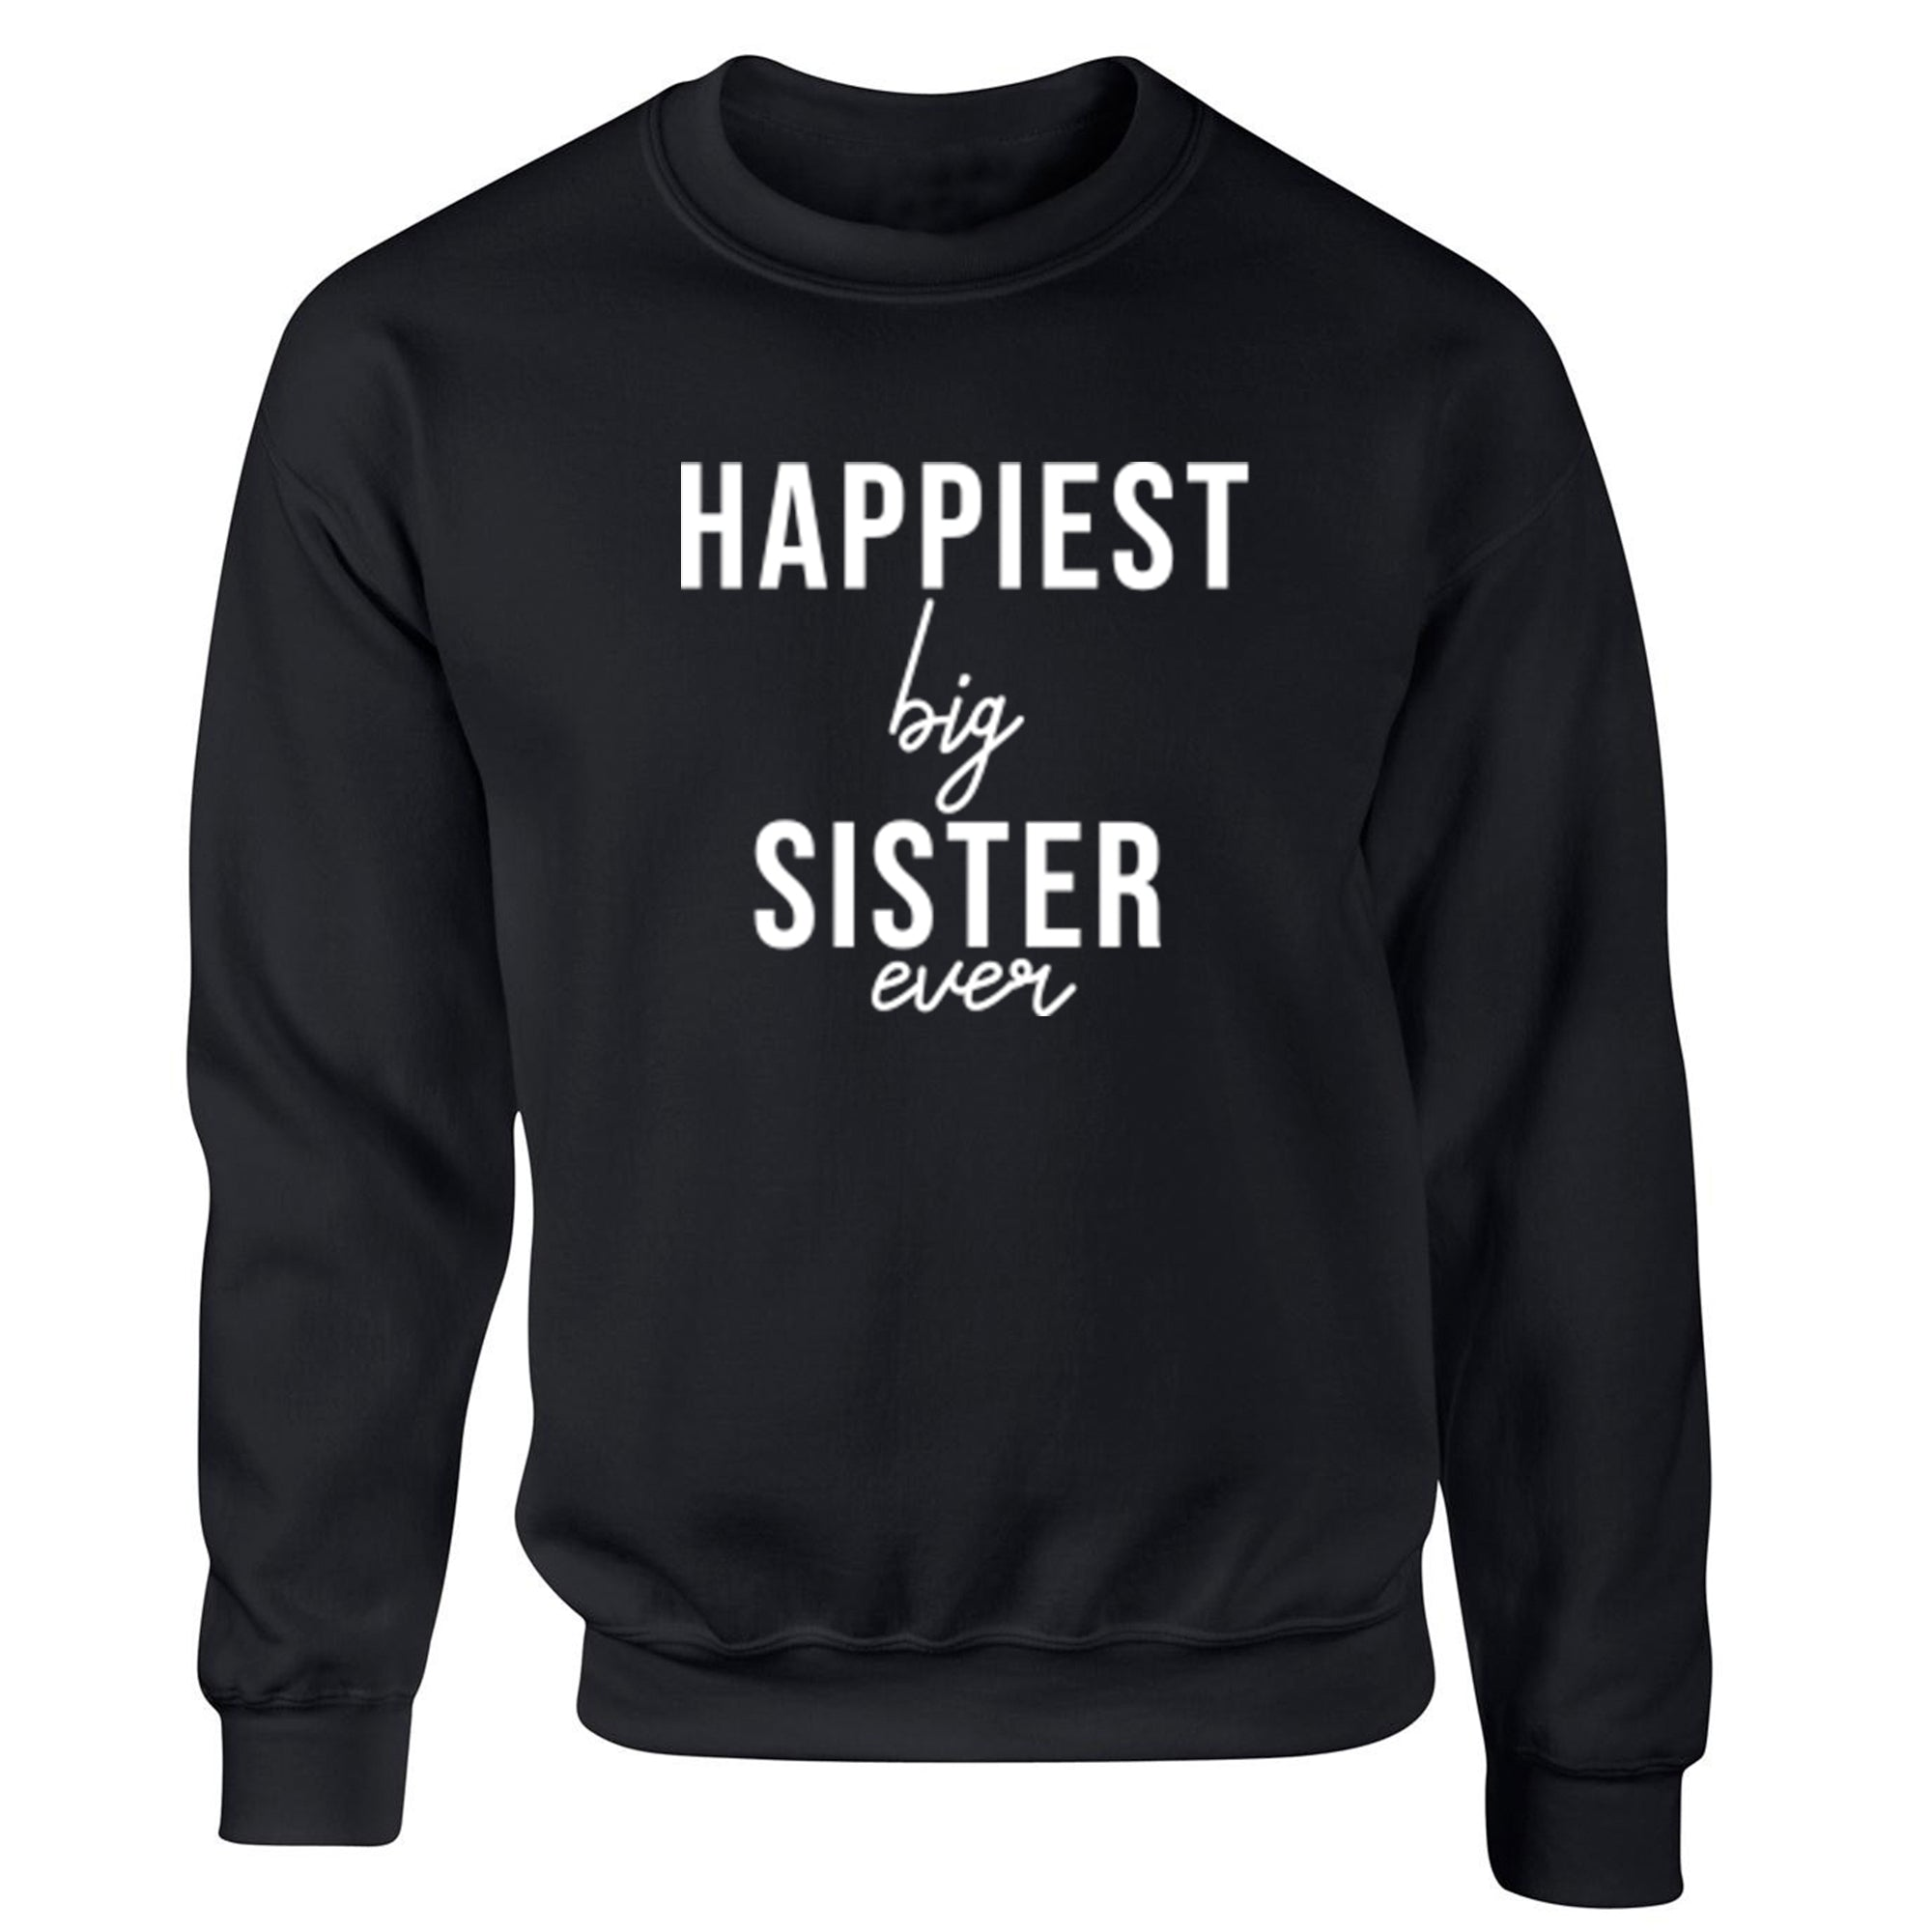 Happiest Big Sister Ever Childrens Ages 3/4-12/14 Unisex Jumper S0515 - Illustrated Identity Ltd.